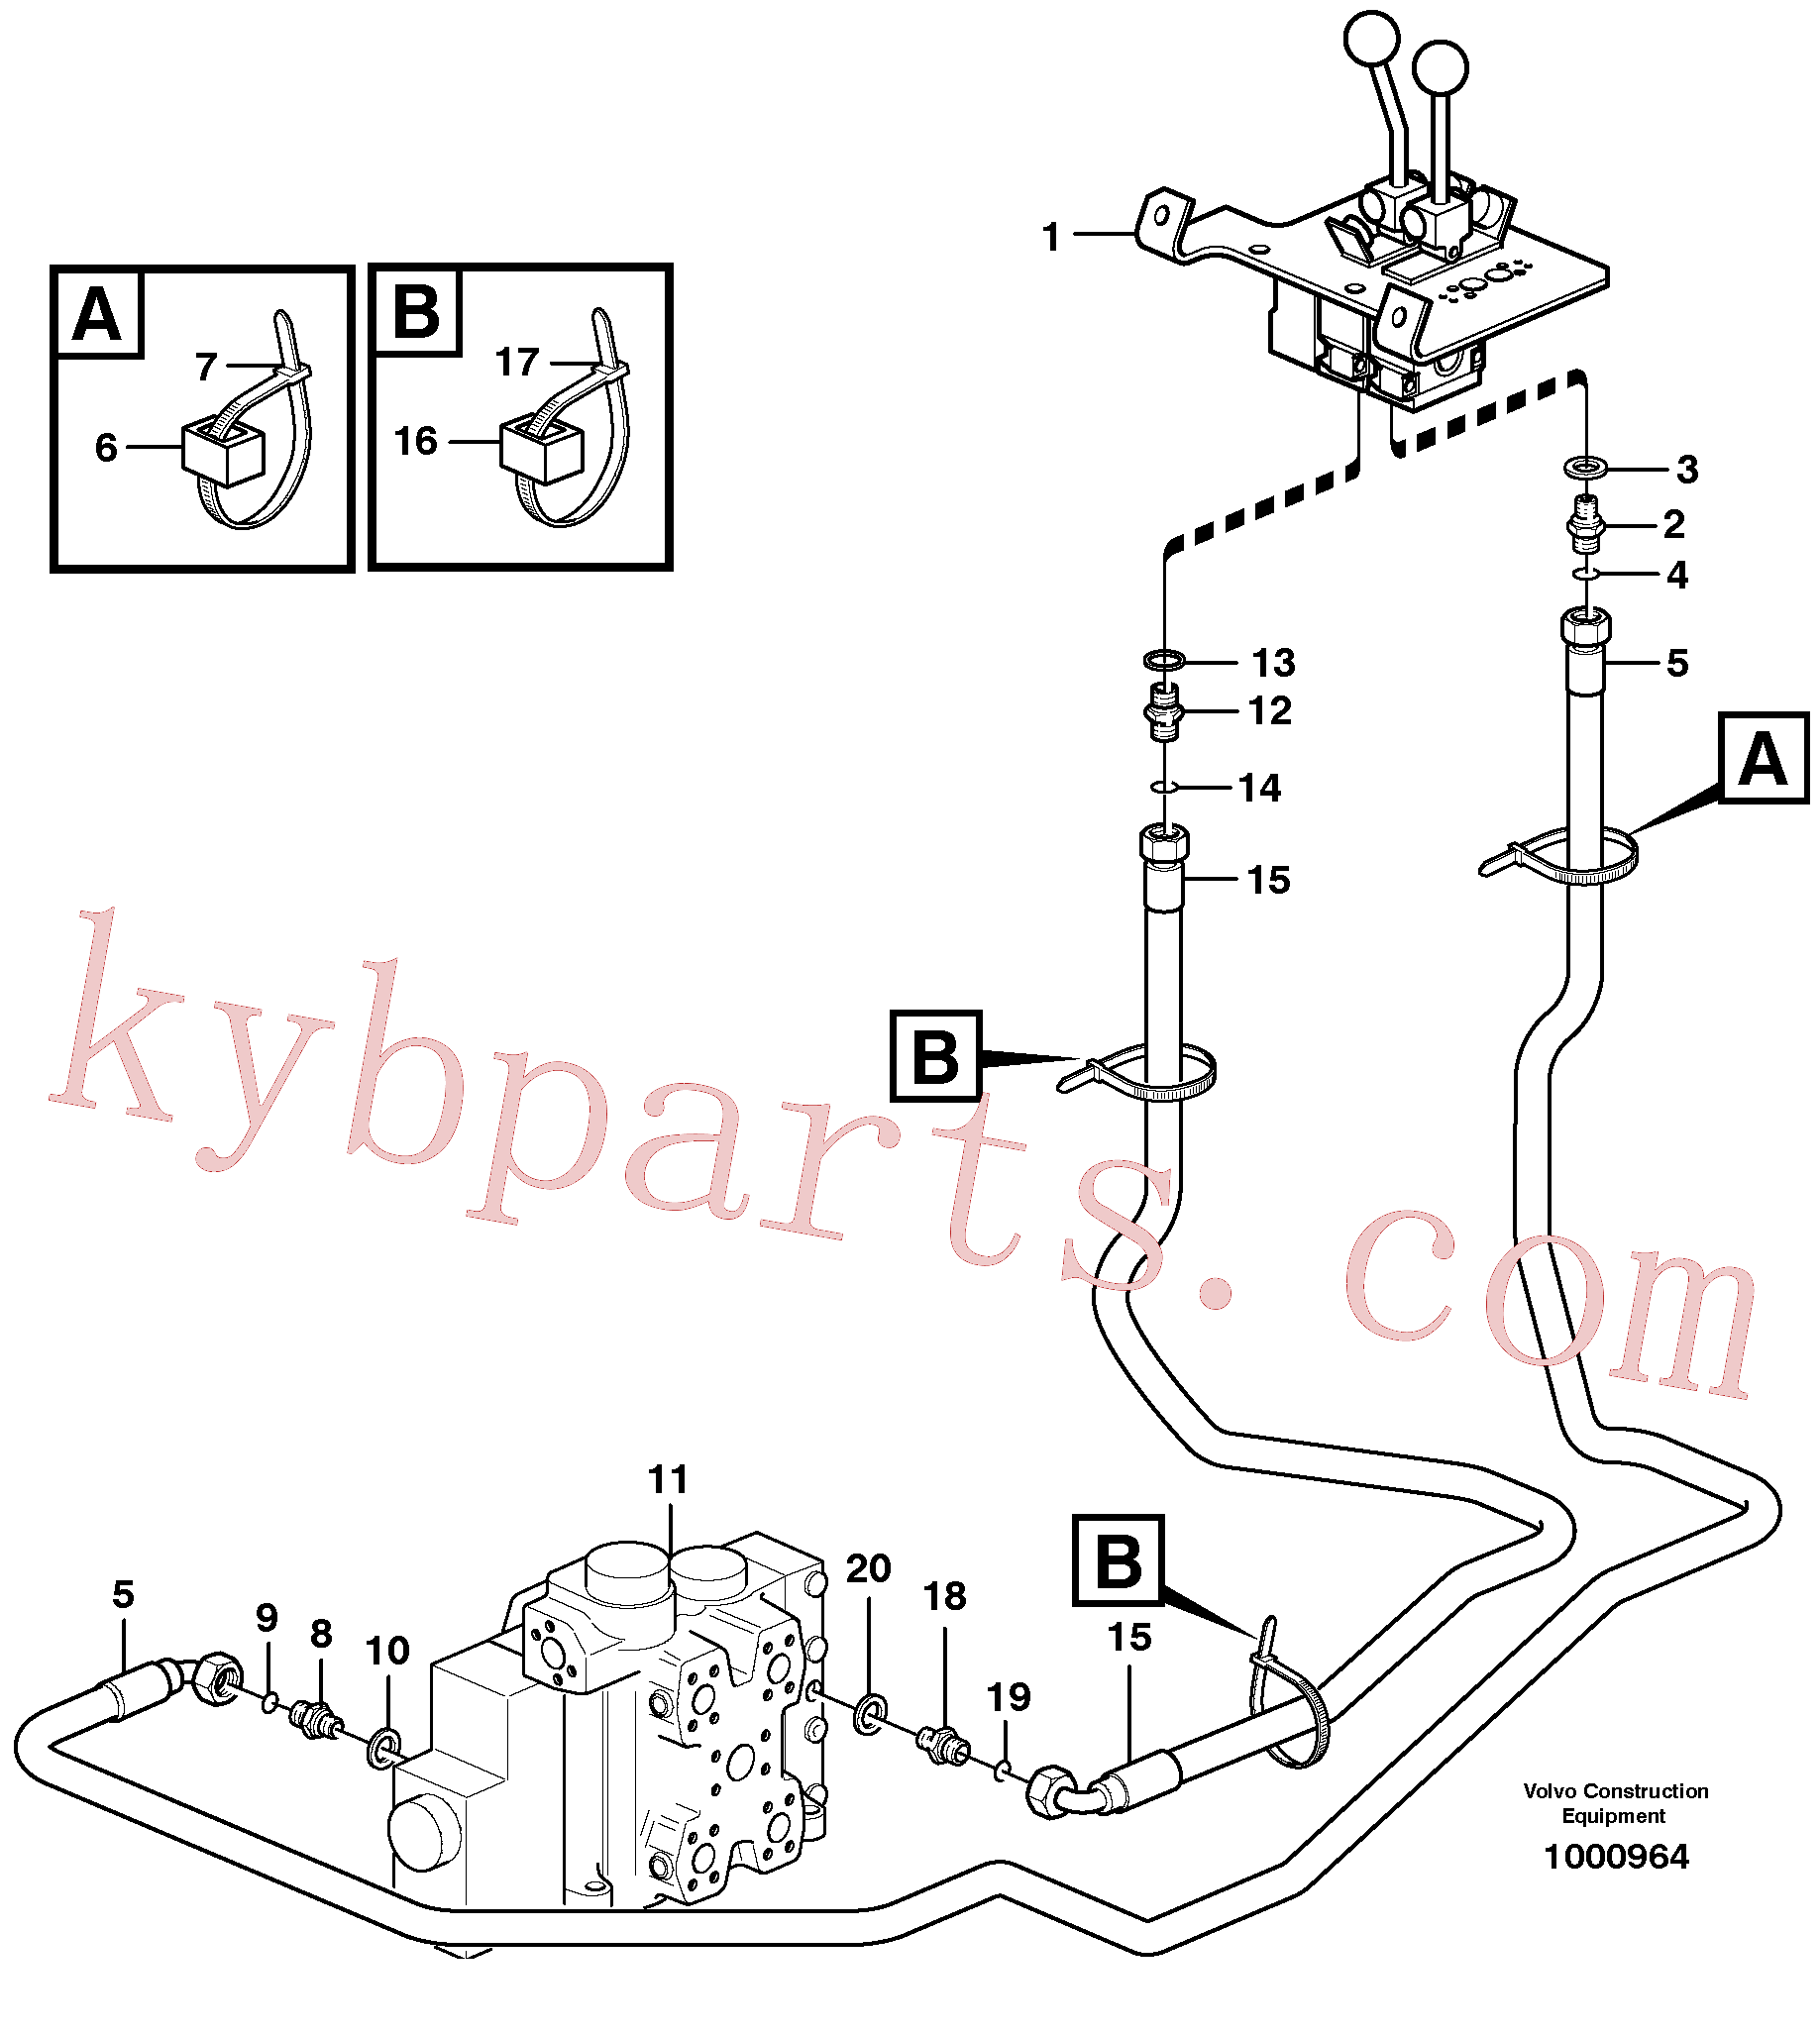 VOE4881455 for Volvo Servo - hydraulic, control lines, lift(1000964 assembly)